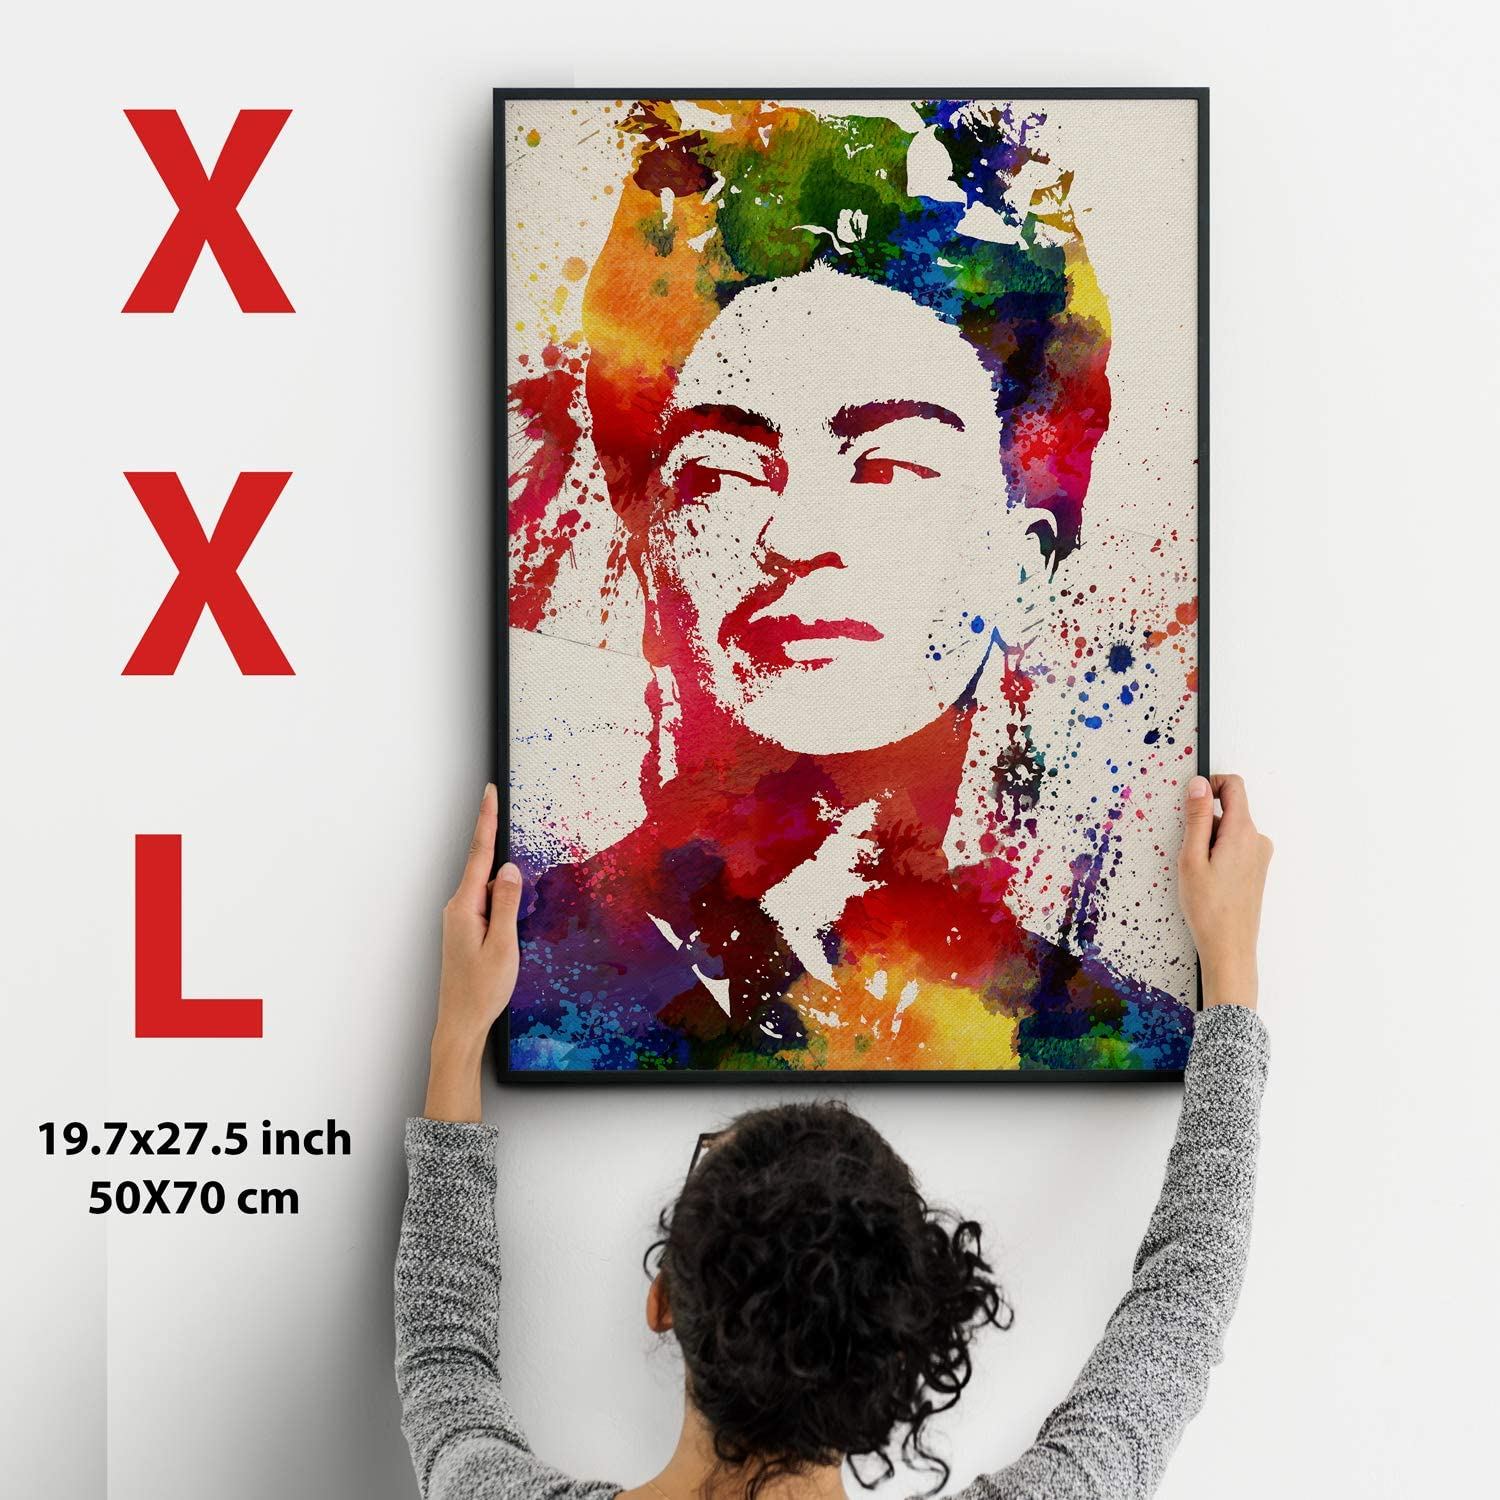 Print for framing Frida Kahlo Style Watercolour. XXL Poster size 50 x 70 cm. Nacnic Prints Frida Kahlo Mexican painter.Mexican wall decor, Aztec art , Chicano art - Set of 1 - Unframed 11x17 inch Size - 250g Paper - Beautiful Poster Painting for Home Office Living Room